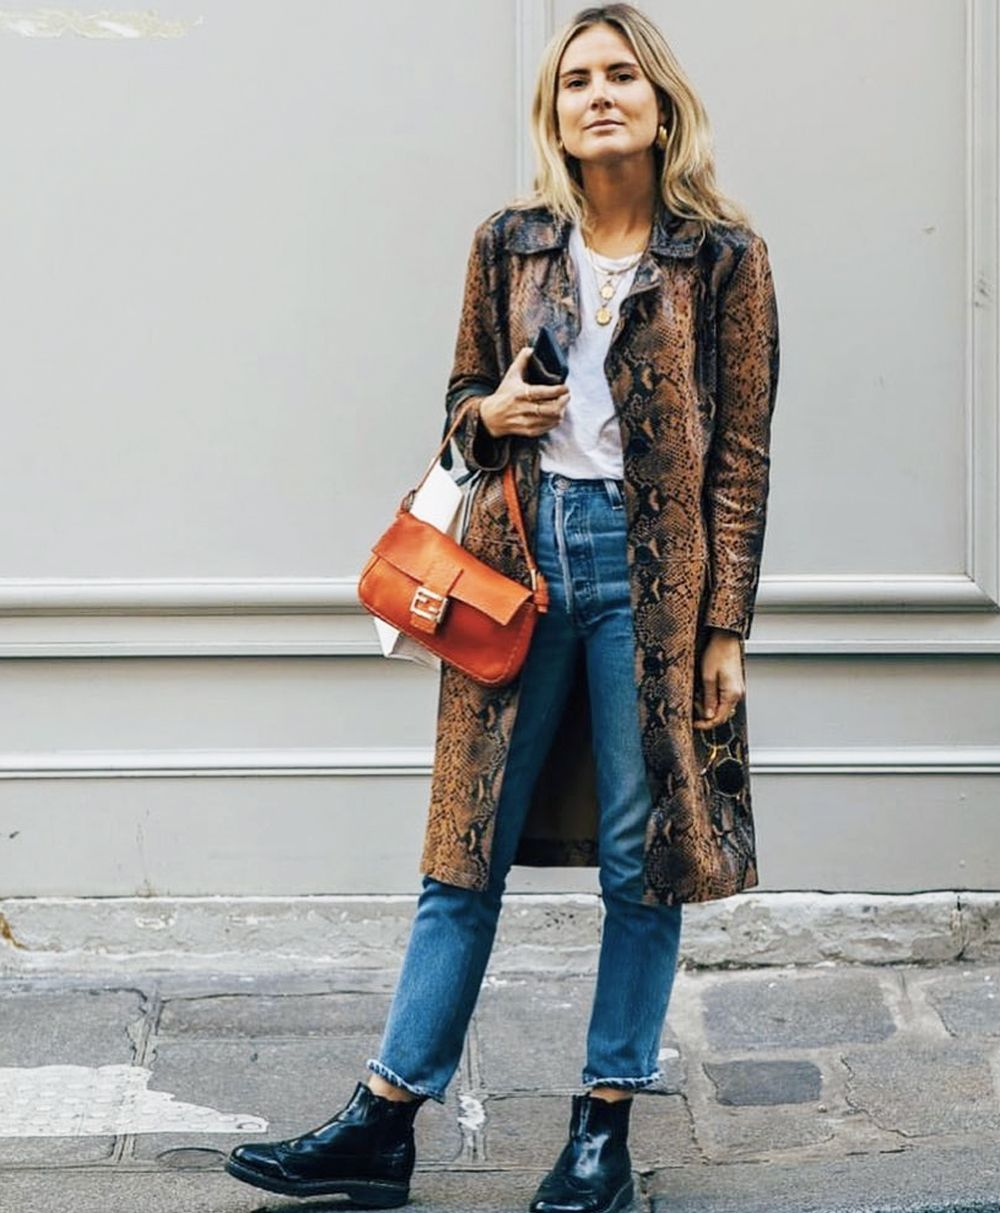 7 Christmas-Party Outfit Ideas for All Types of Dress Codes